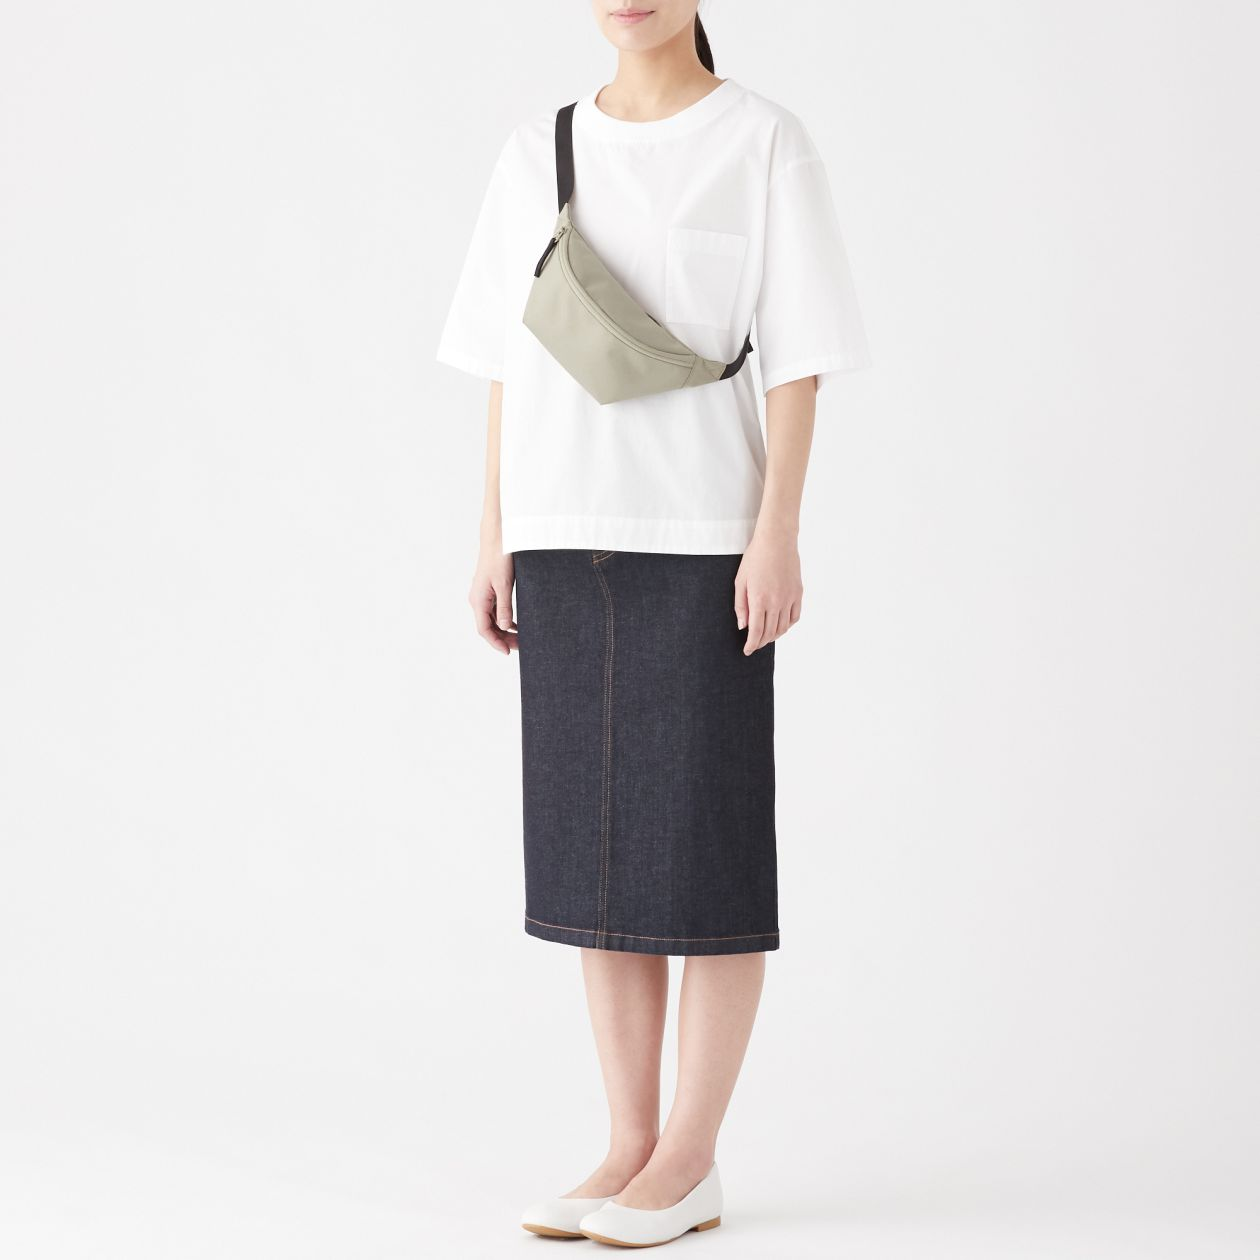 https://www.muji.net/store/cmdty/detail/4550182292923?searchno=8&sectionCode=S1000514#&gid=1&pid=6